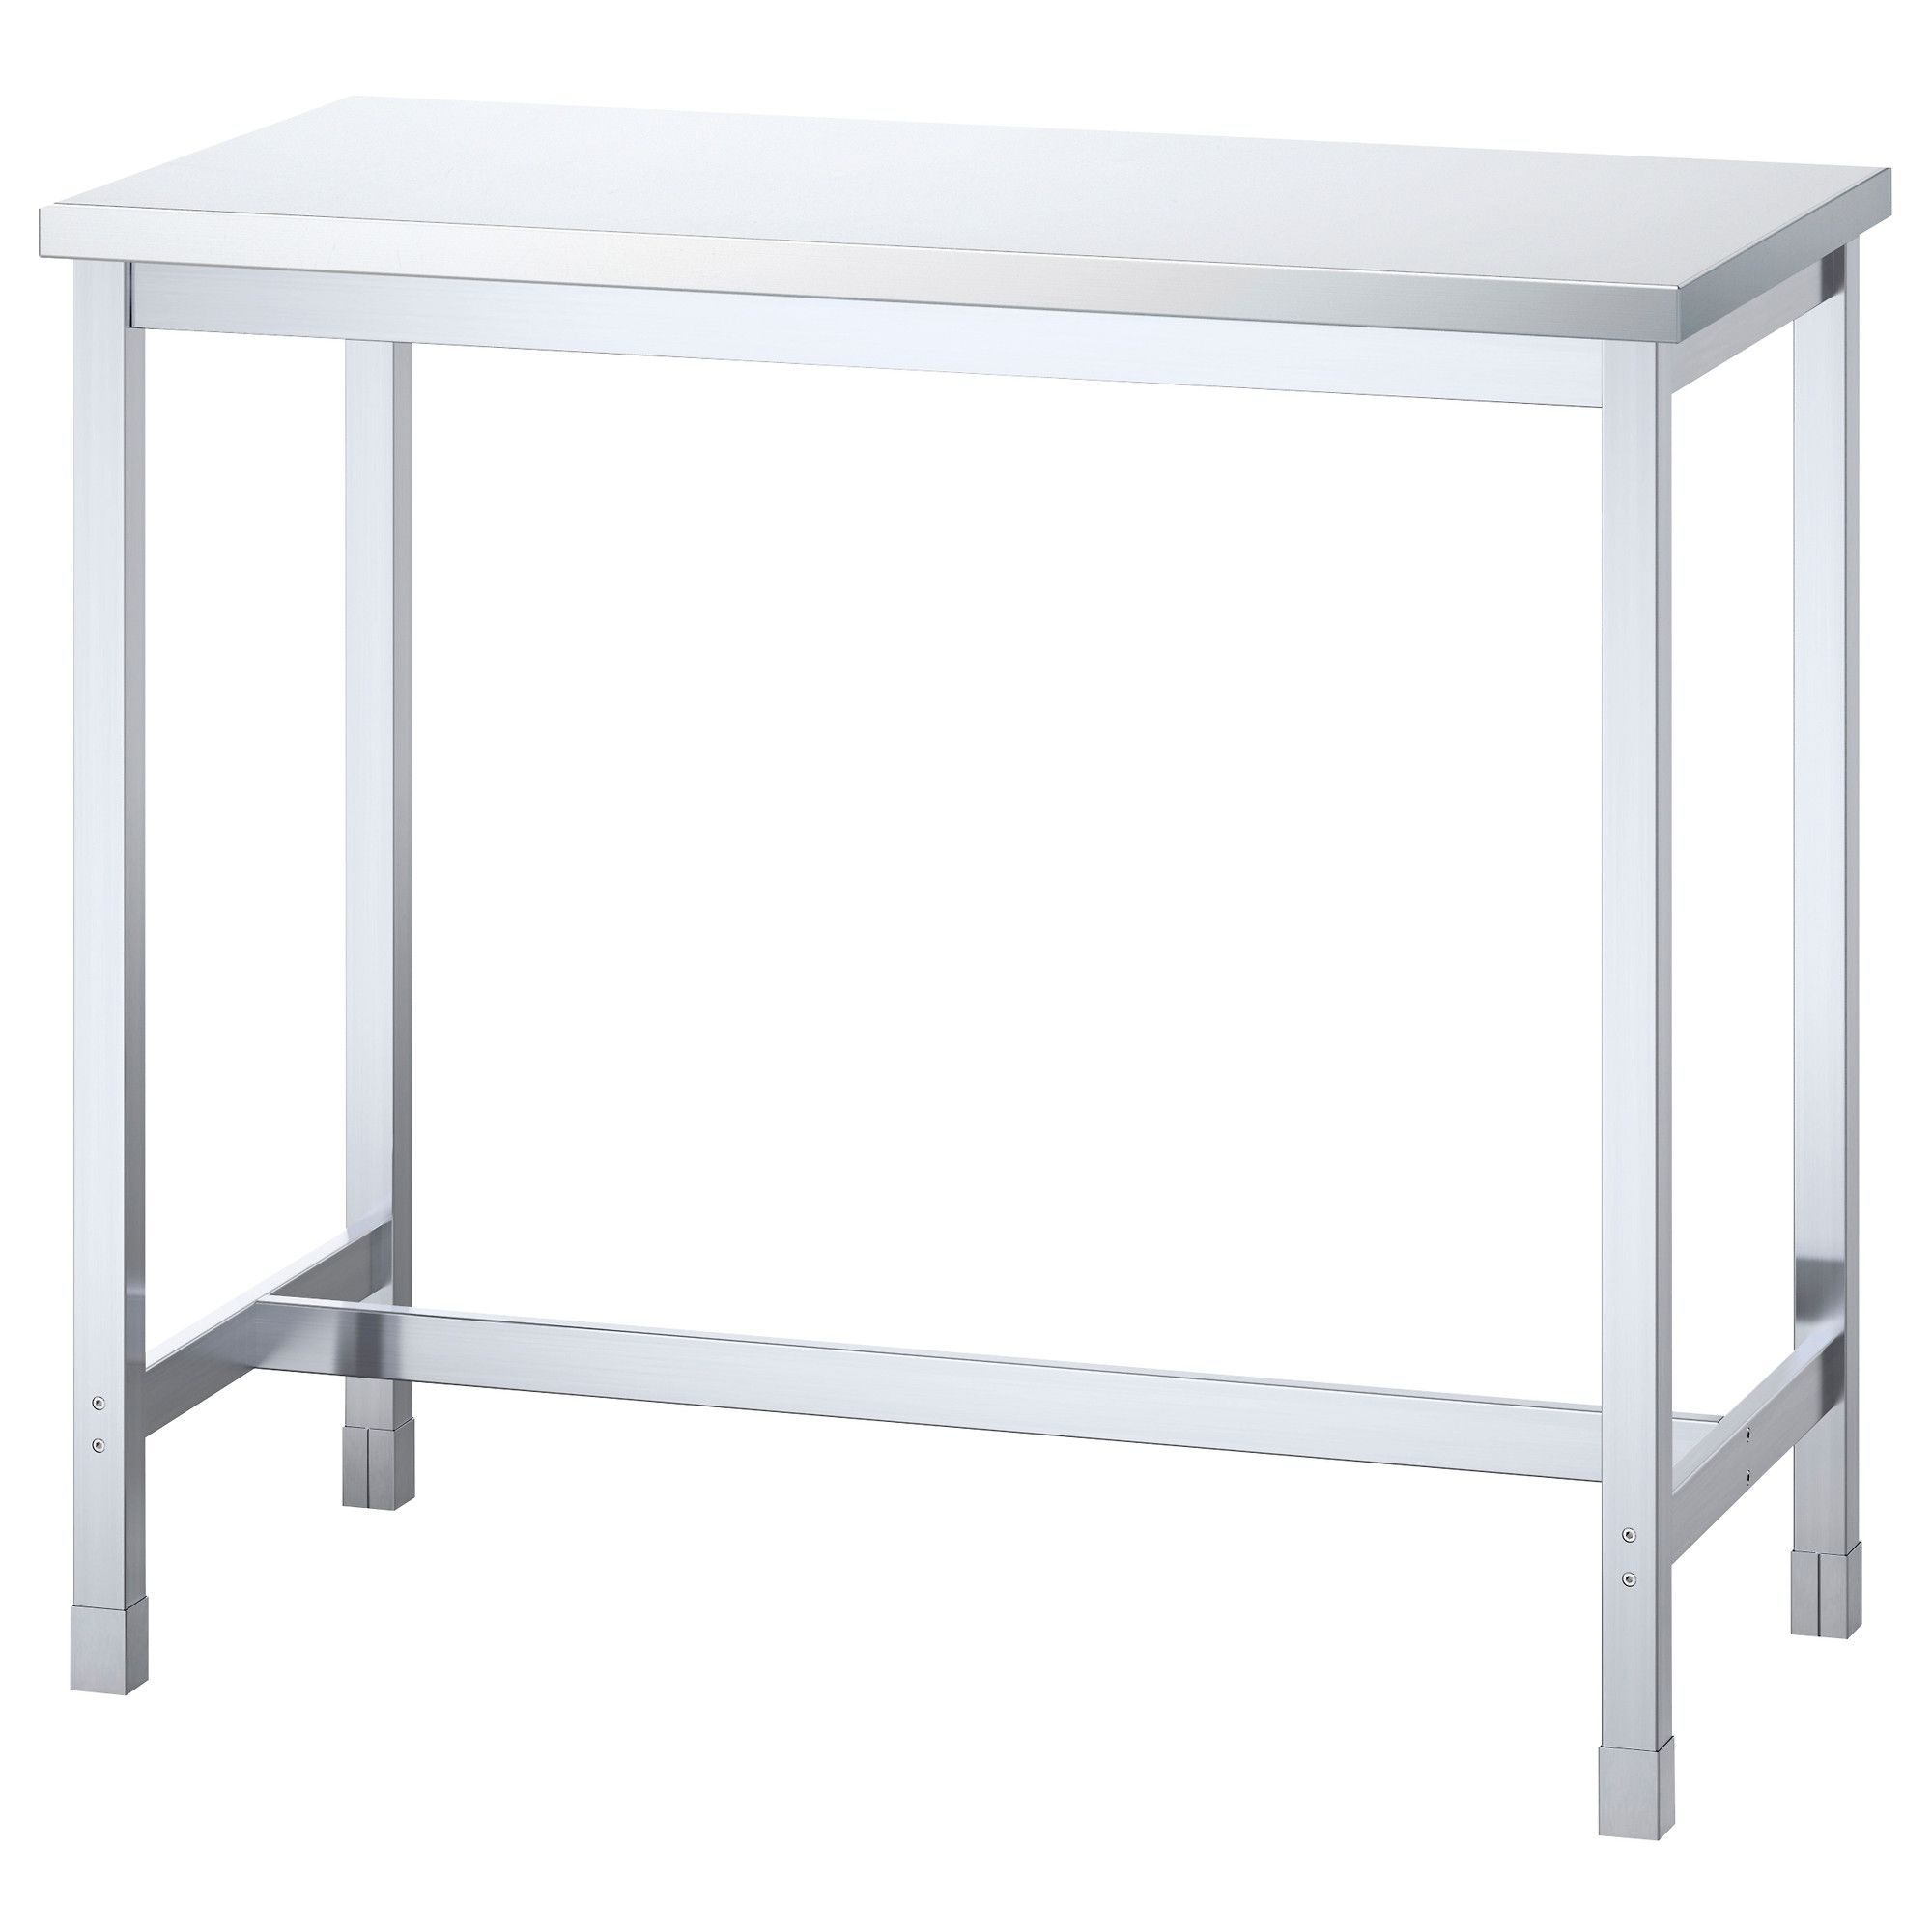 Utby Table Haute Acier Inox Ikea Meubles Pinterest Table